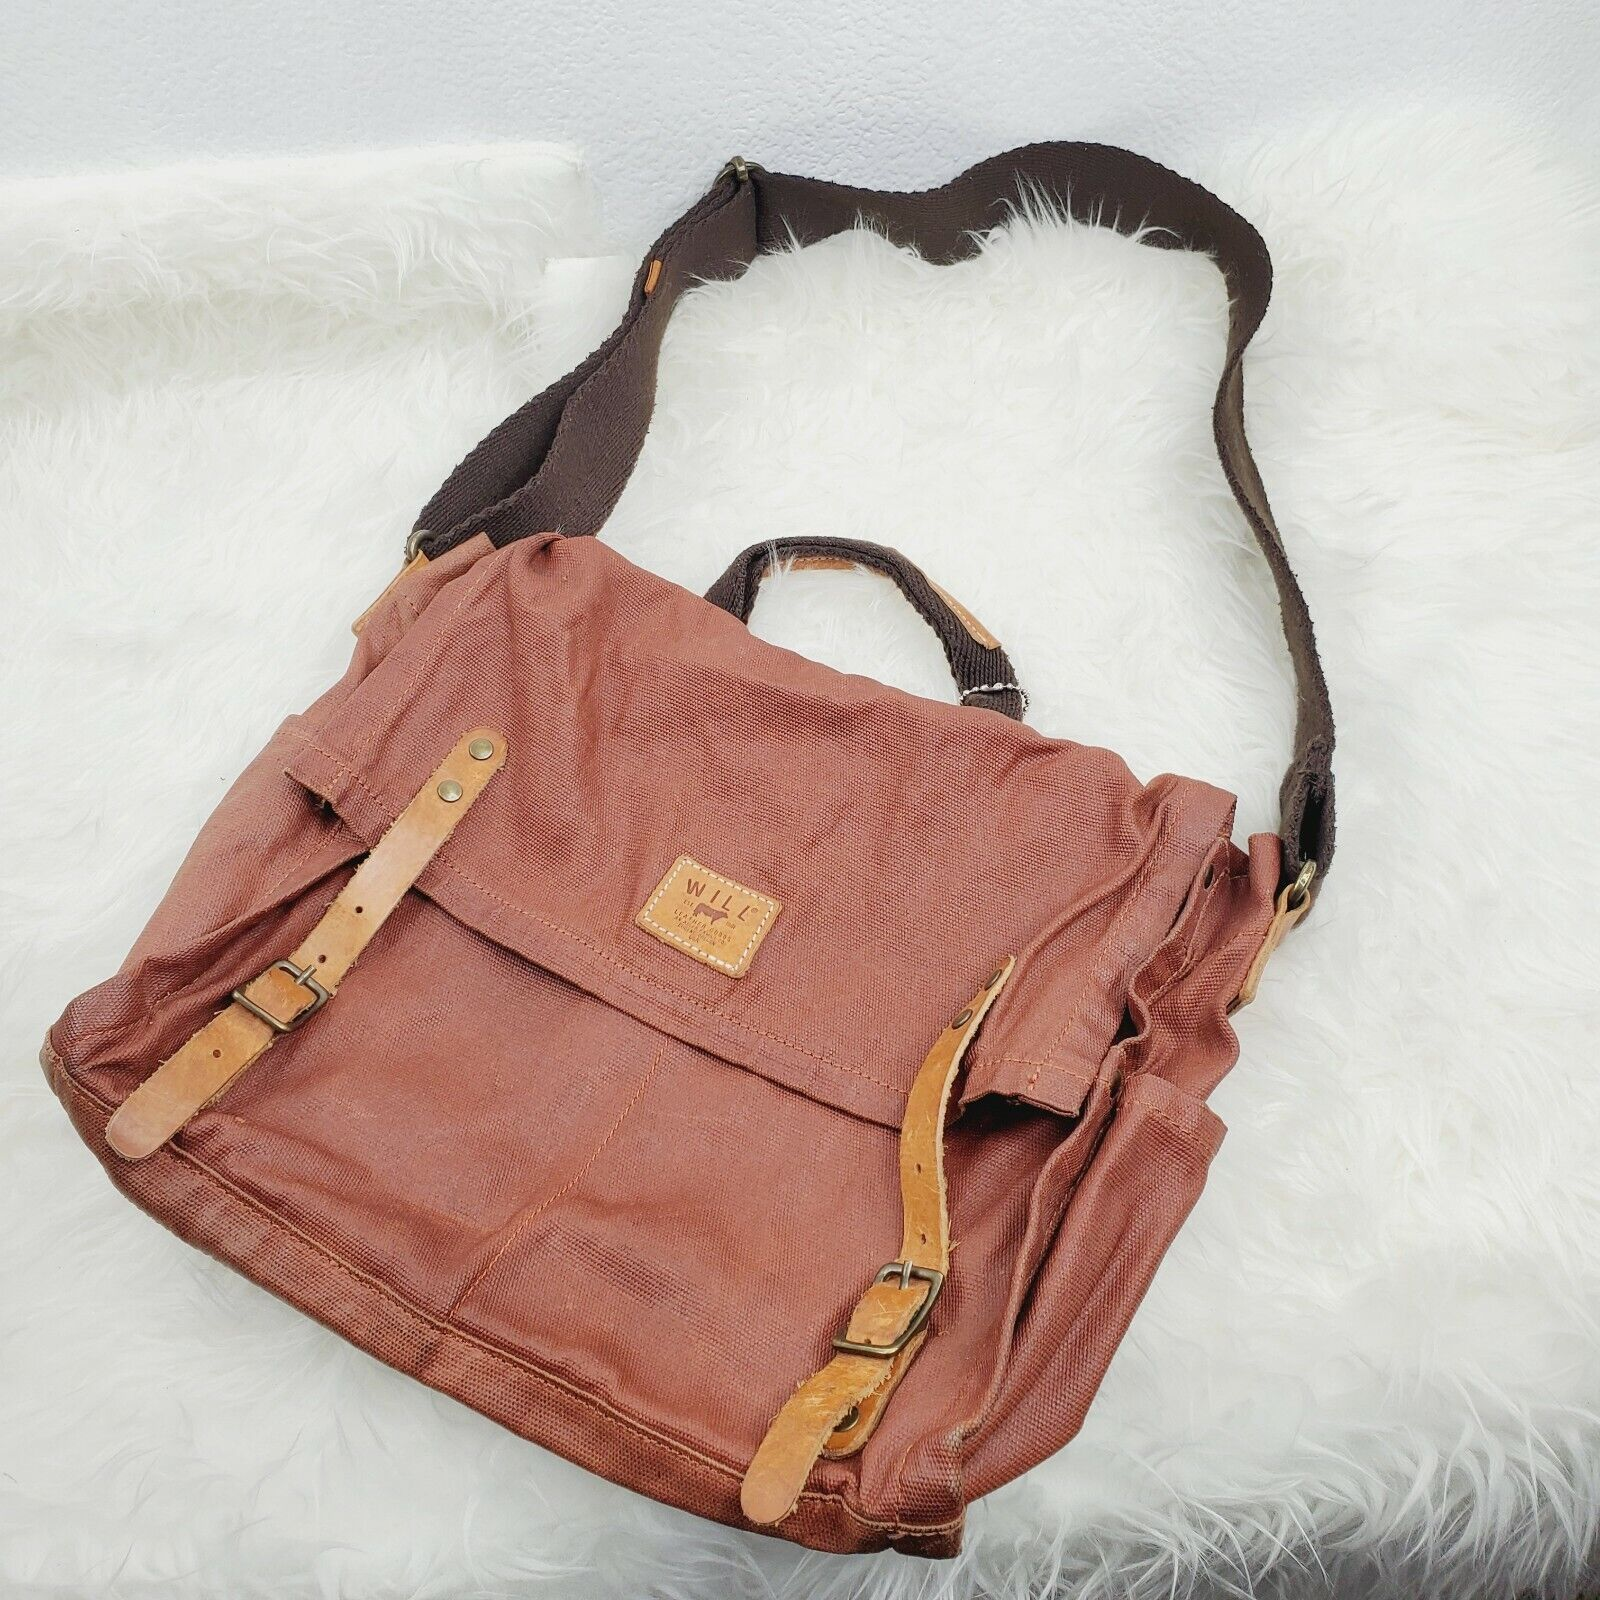 WILL Leather Good Canvas Messenger Bags Adjustable